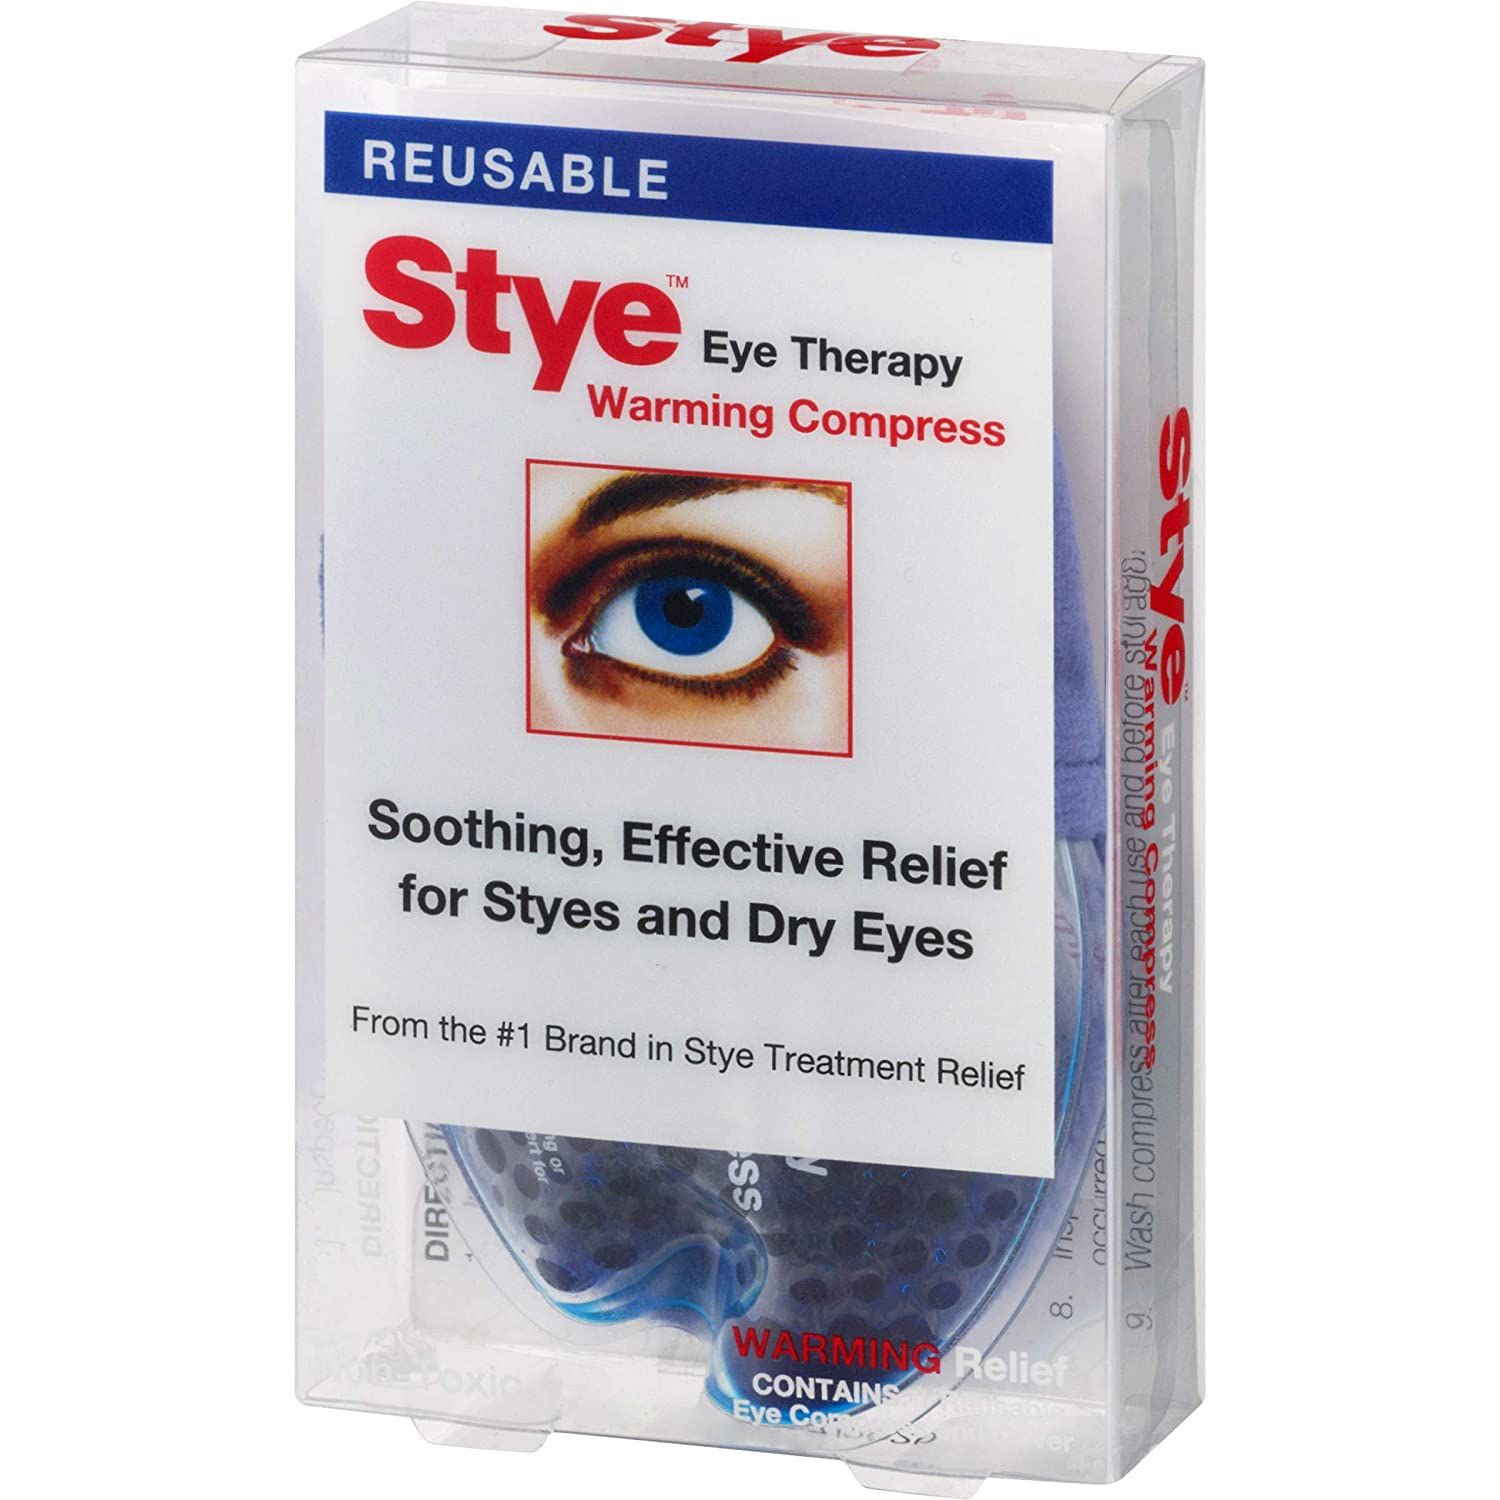 Stye Eye Therapy Reusable Warming Compress Relief For Styes And Dry Eyes